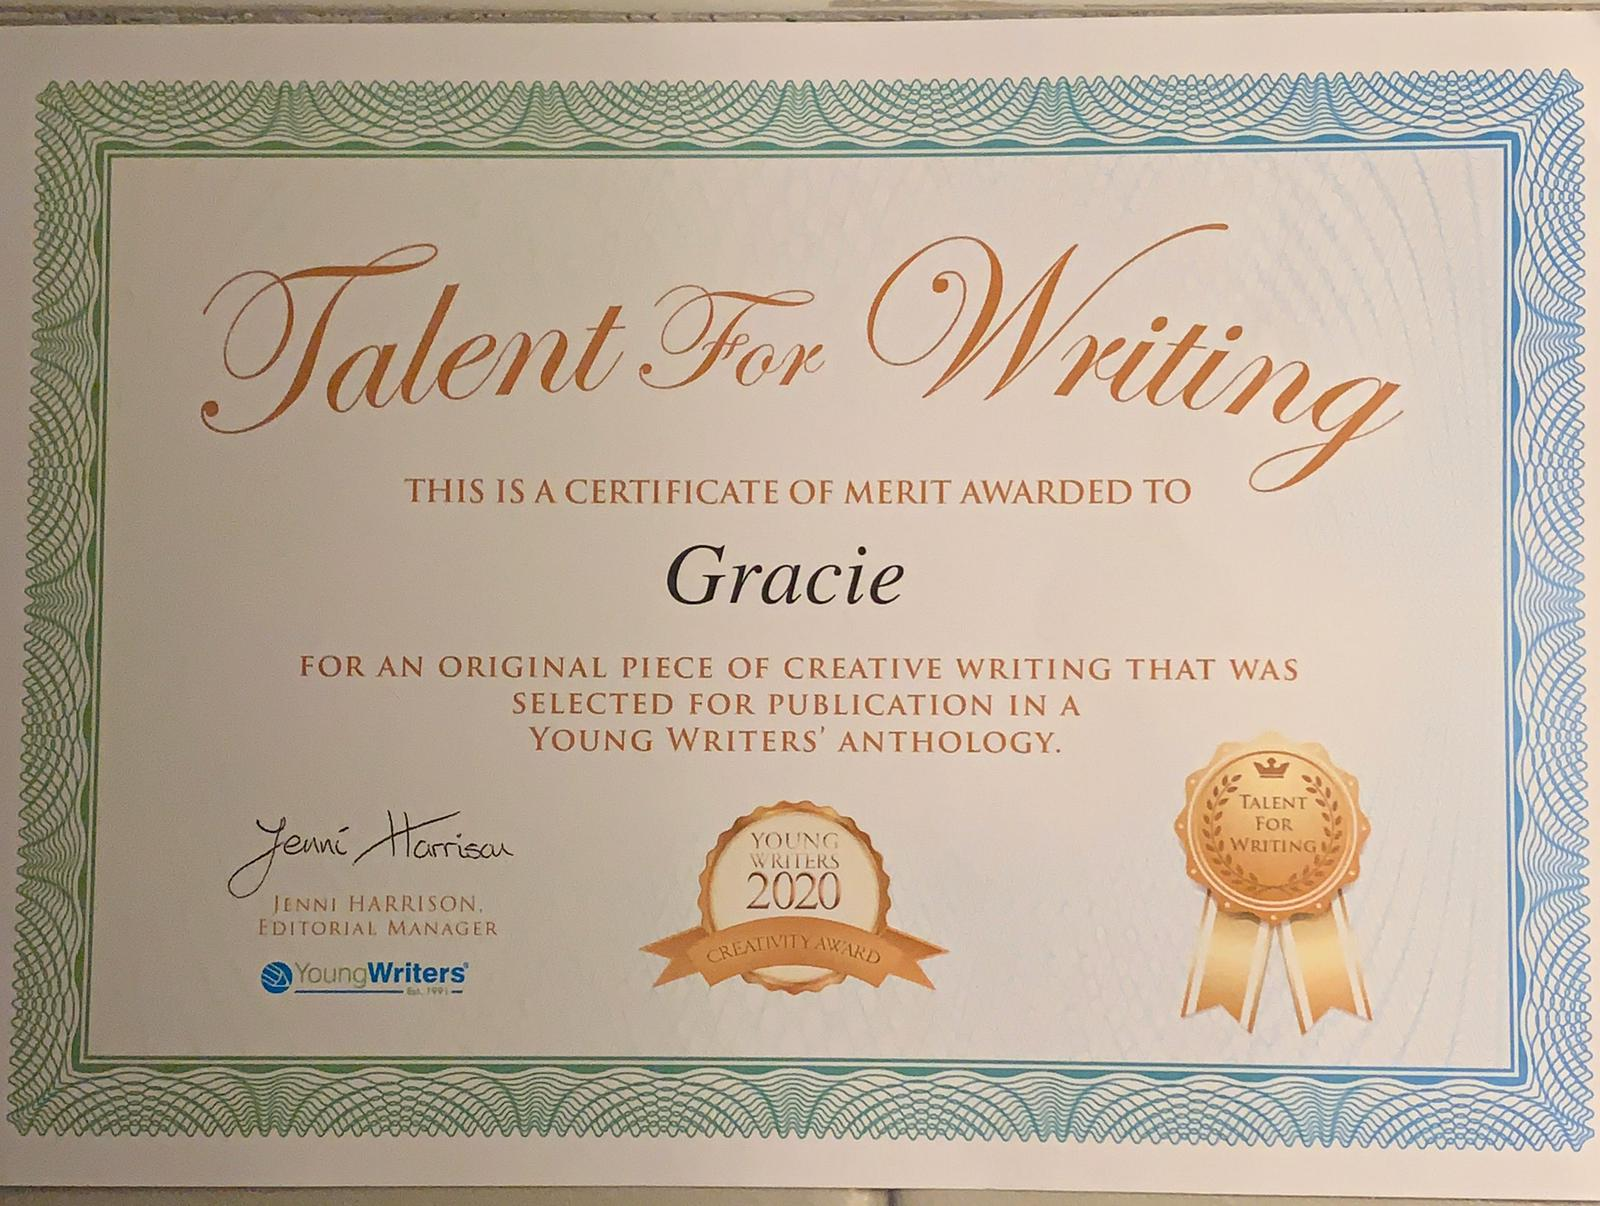 Grace holding her certificate saying Young Writers 2020 Creativity Award